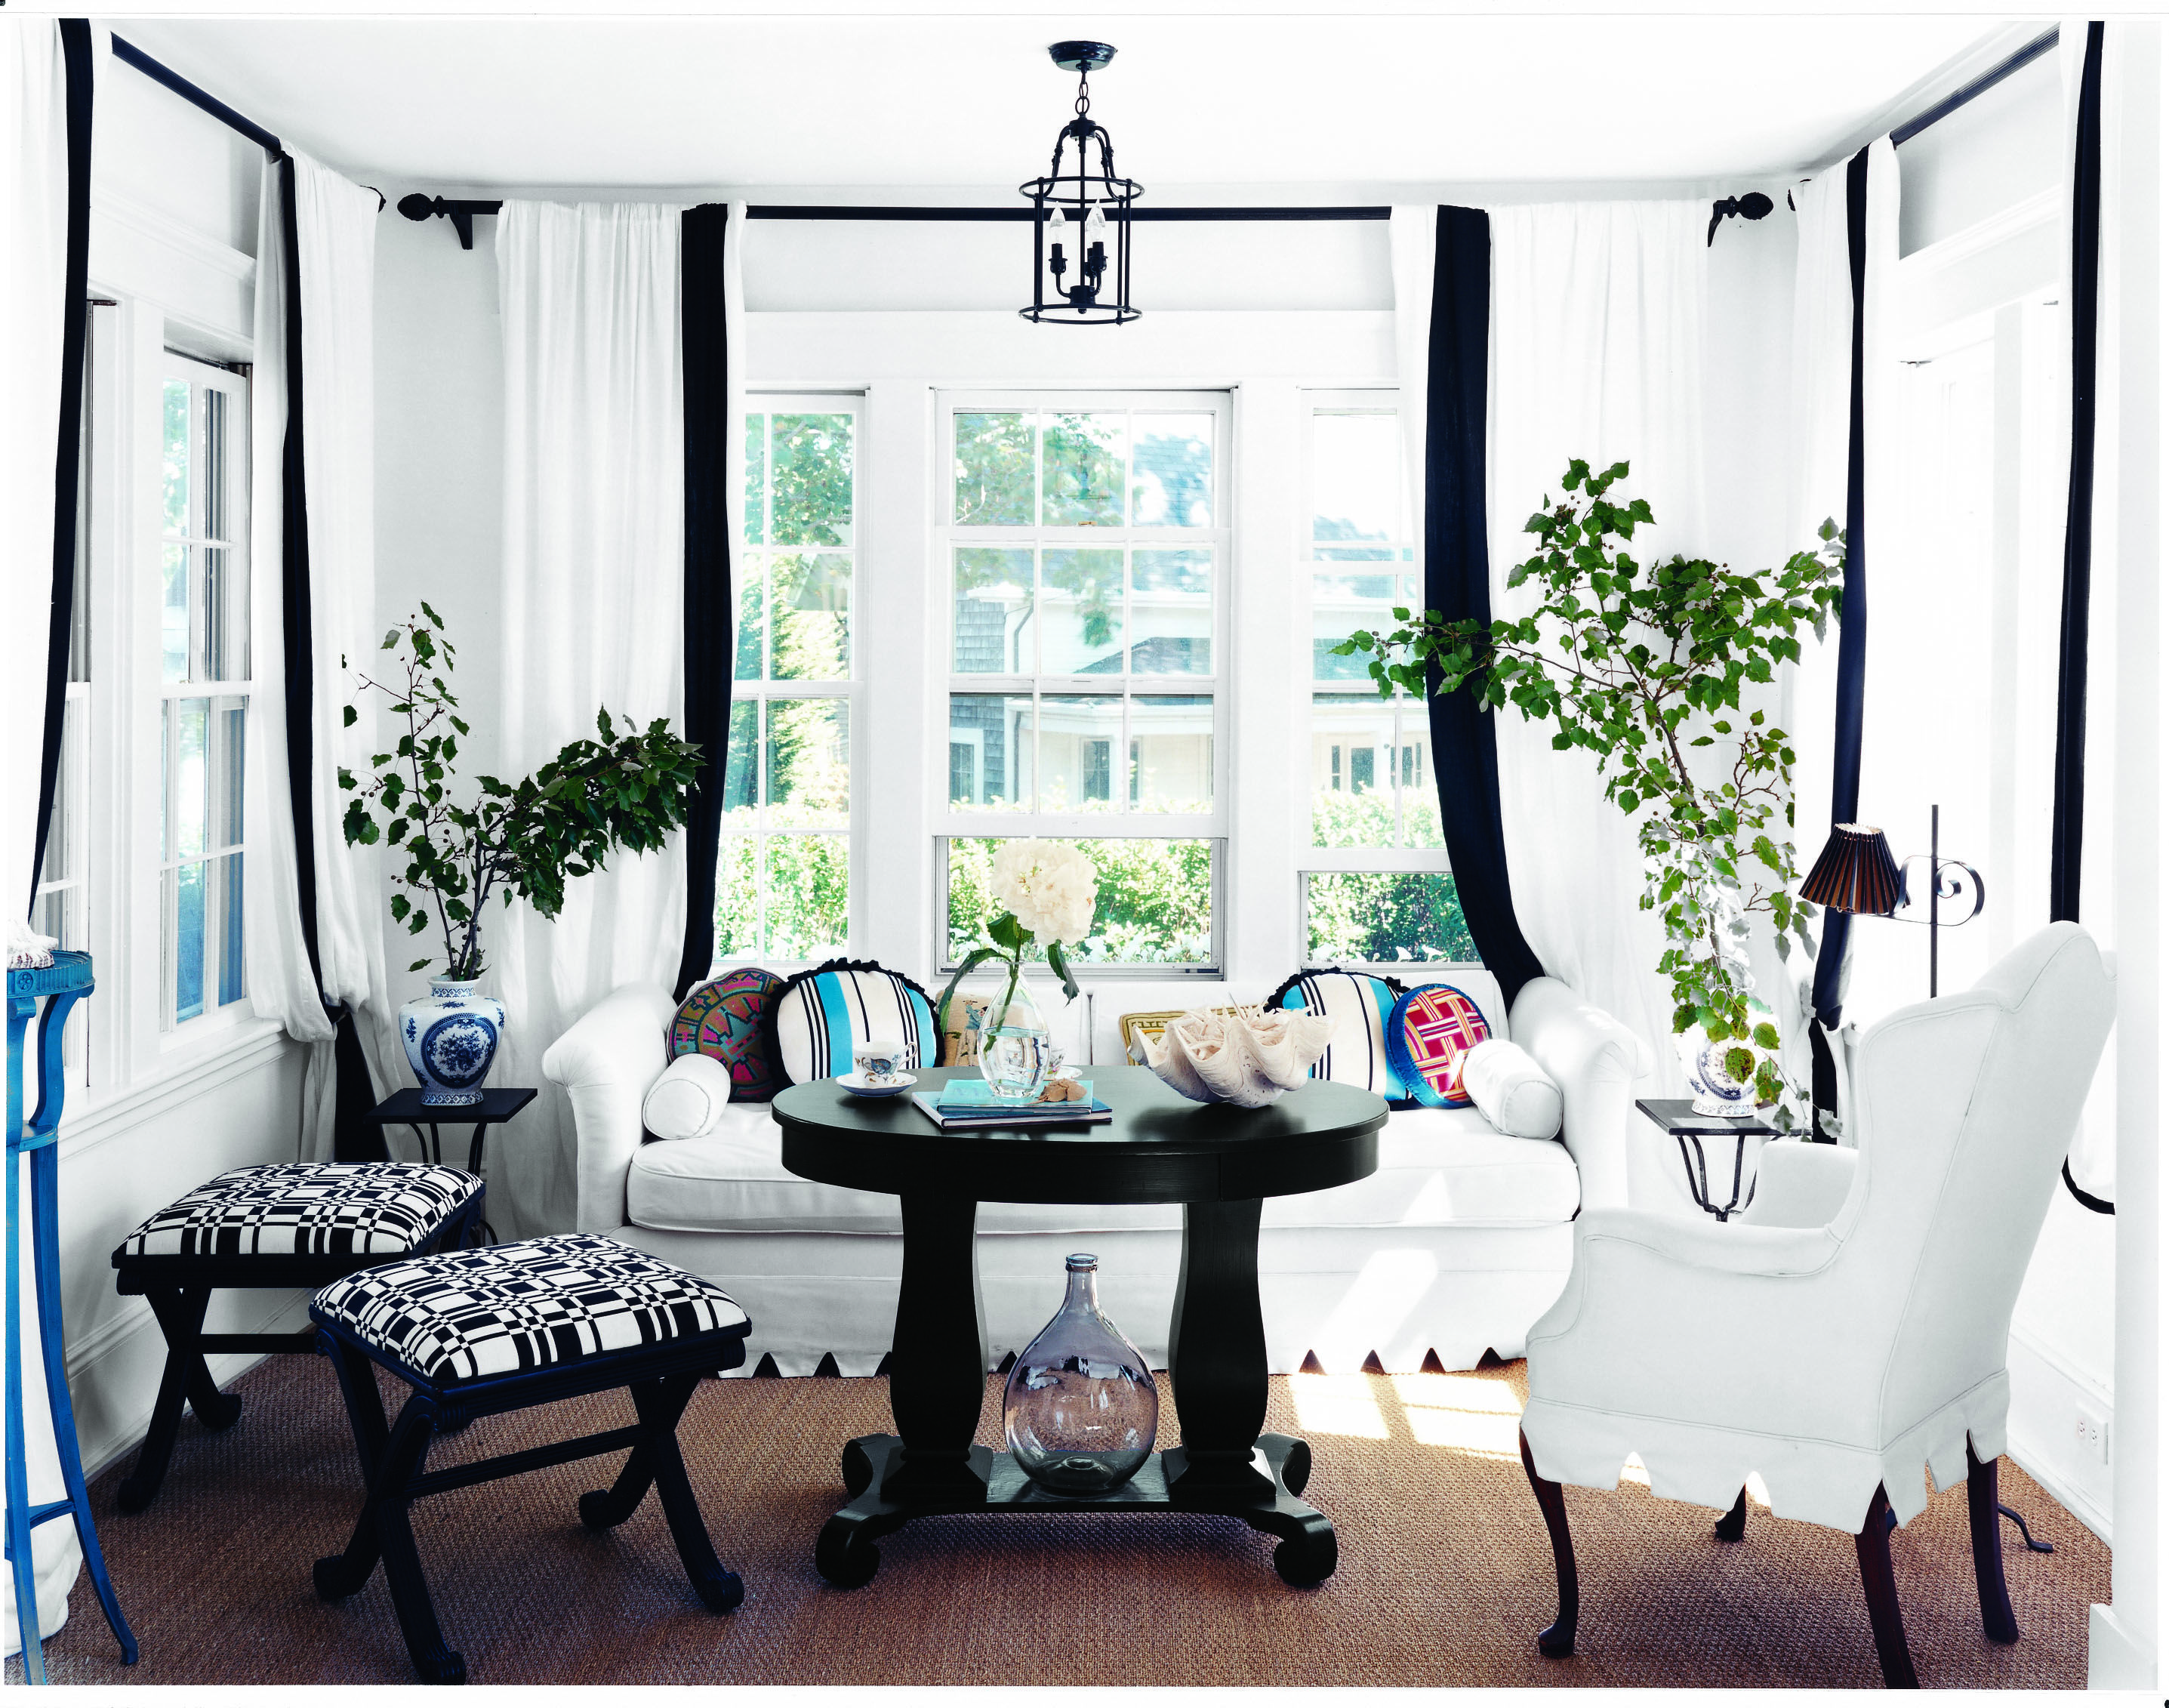 28+ Living Room Borders Ideas Images